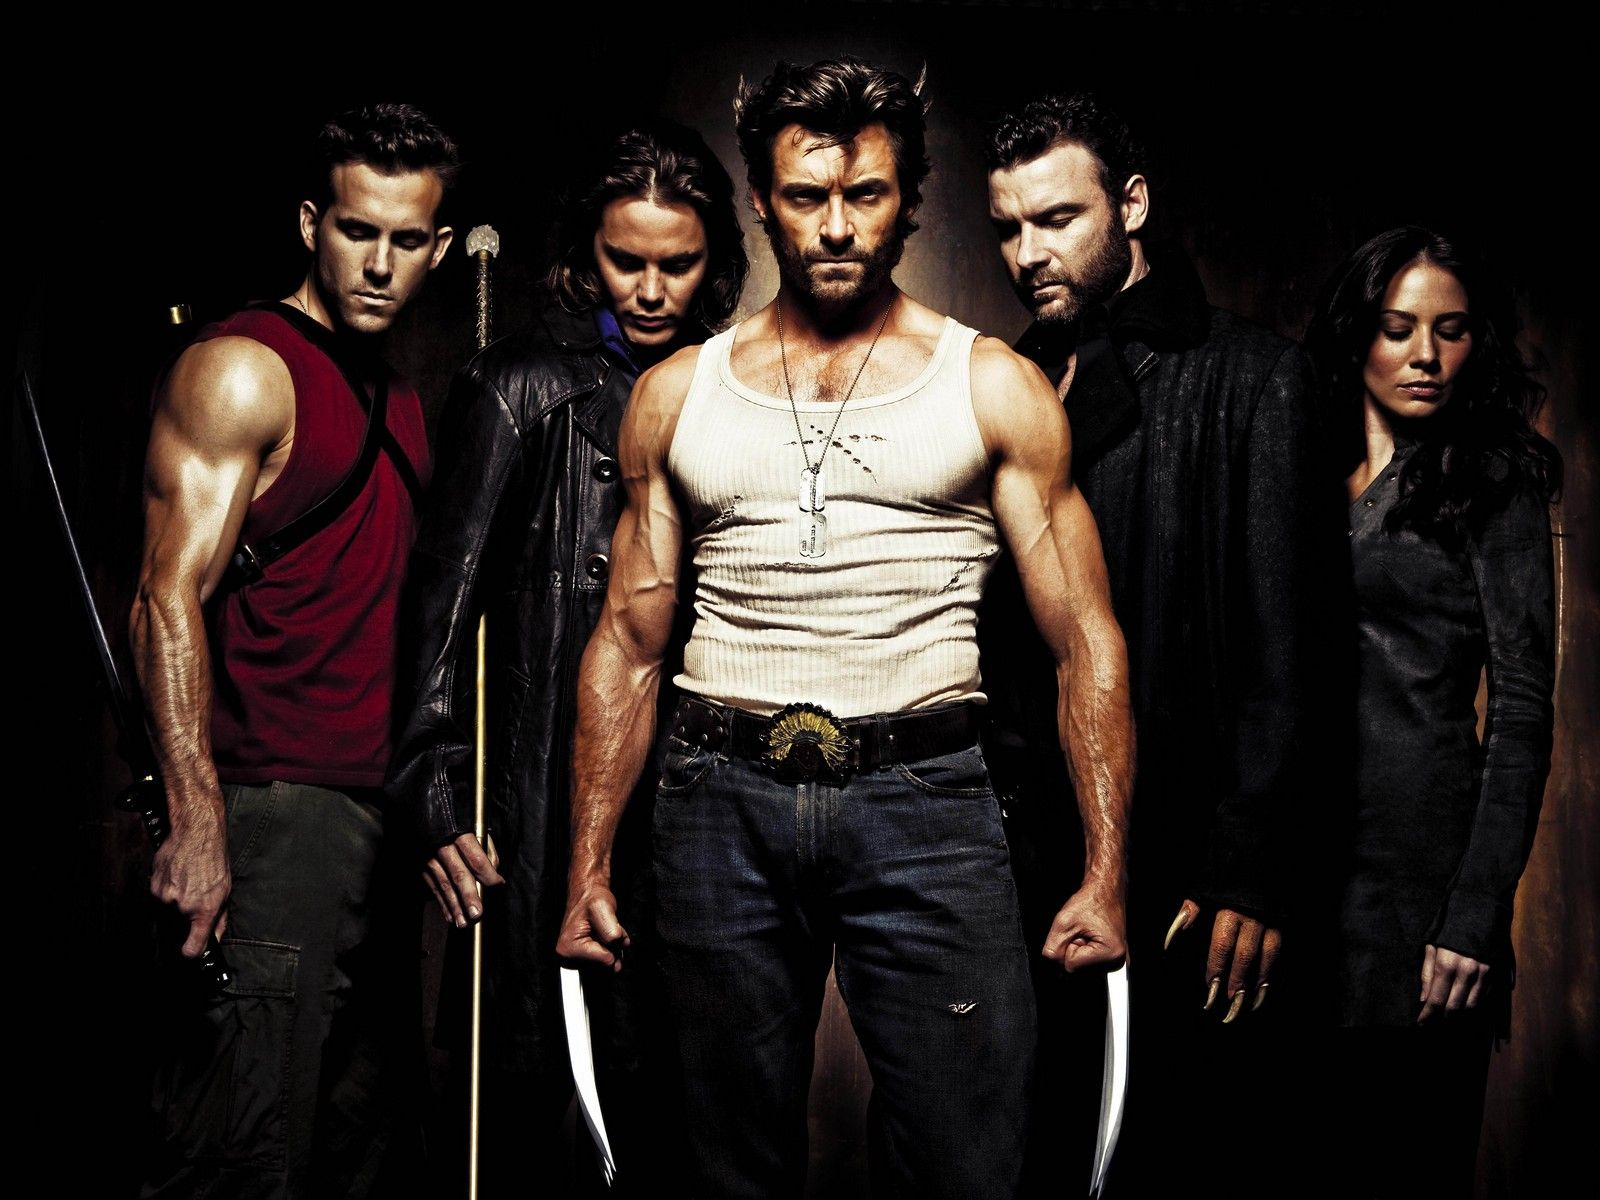 Liked This Movie Lots Of Eye Candy Lol Wolverine Movie Wolverine Poster Wolverine Hugh Jackman